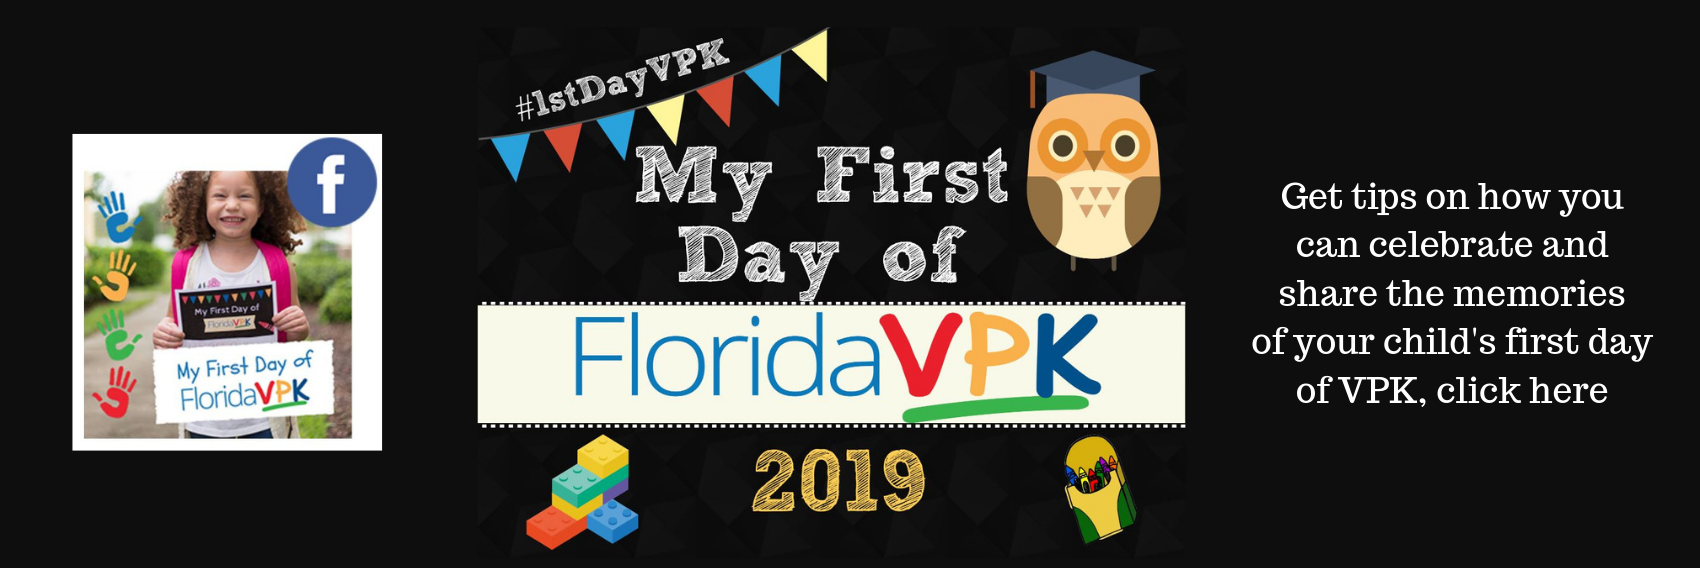 First Day of VPK 2019